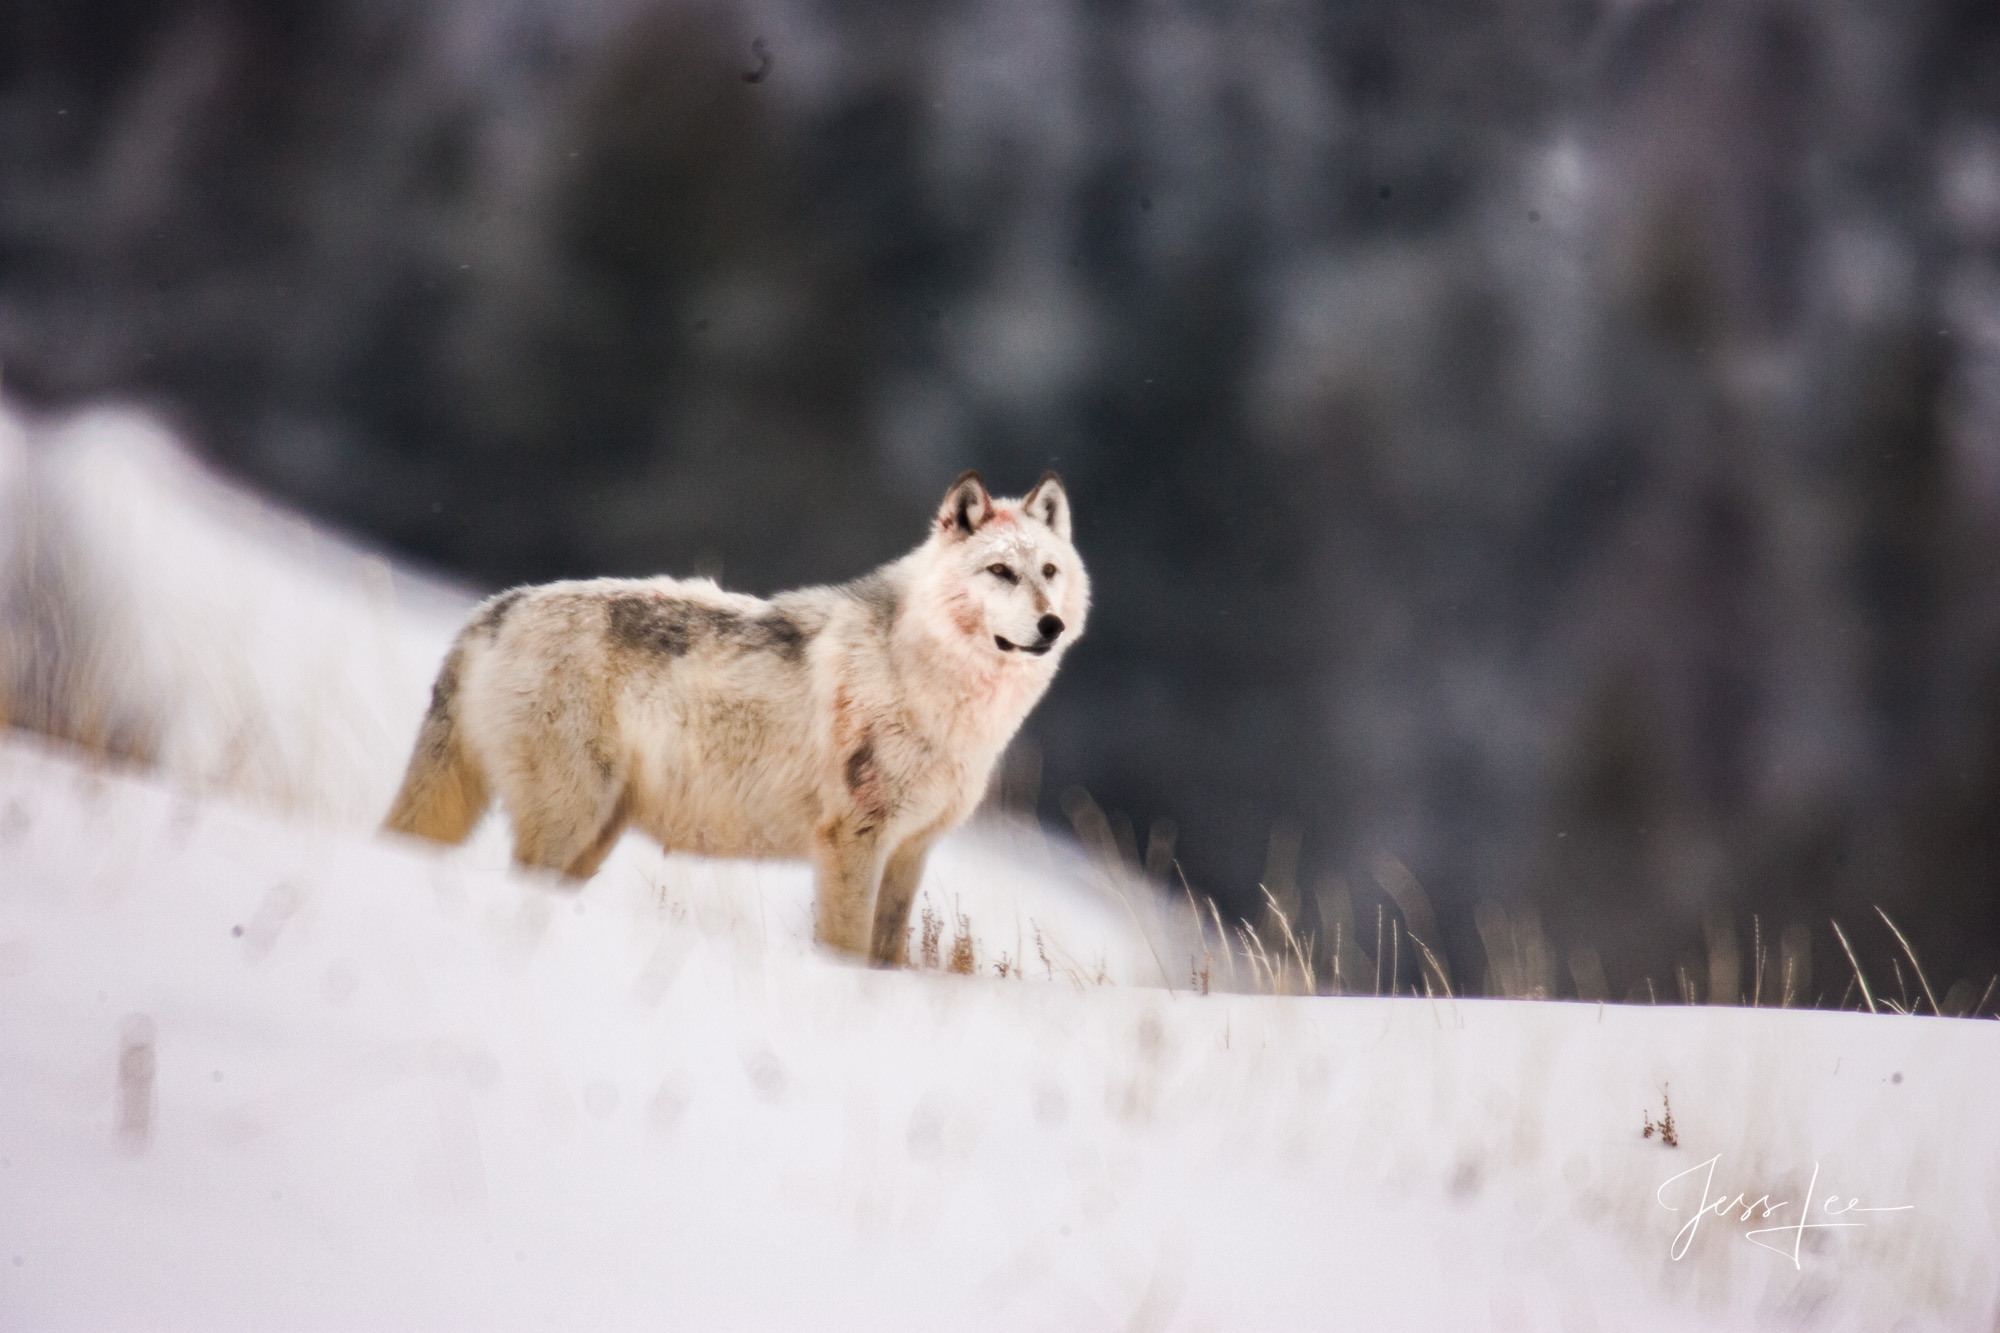 Wolf, wolves, Wild, Yellowstone, pack, reintroduction, hunter, hunting, kill, jess lee, wildlife photographer, National Geographic, great, legendary photographer, best wolf photographer, best wild wol, photo